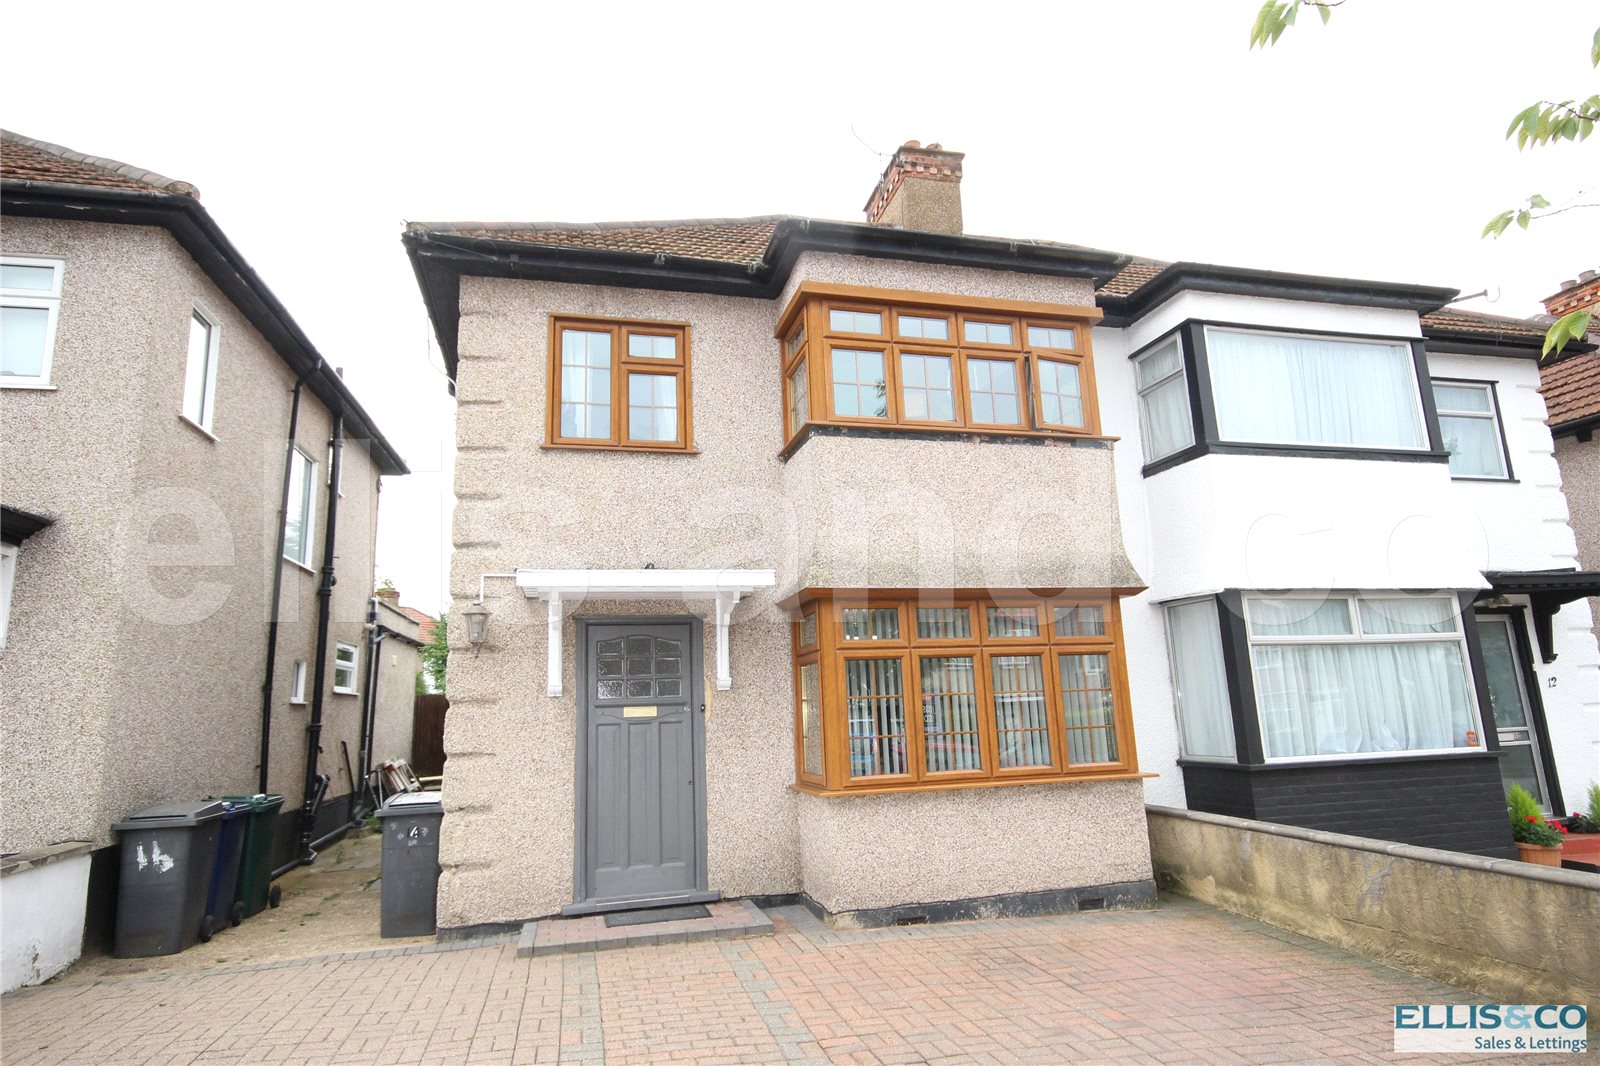 3 Bedrooms Semi Detached House for sale in Orchard Crescent Edgware Middlesex HA8